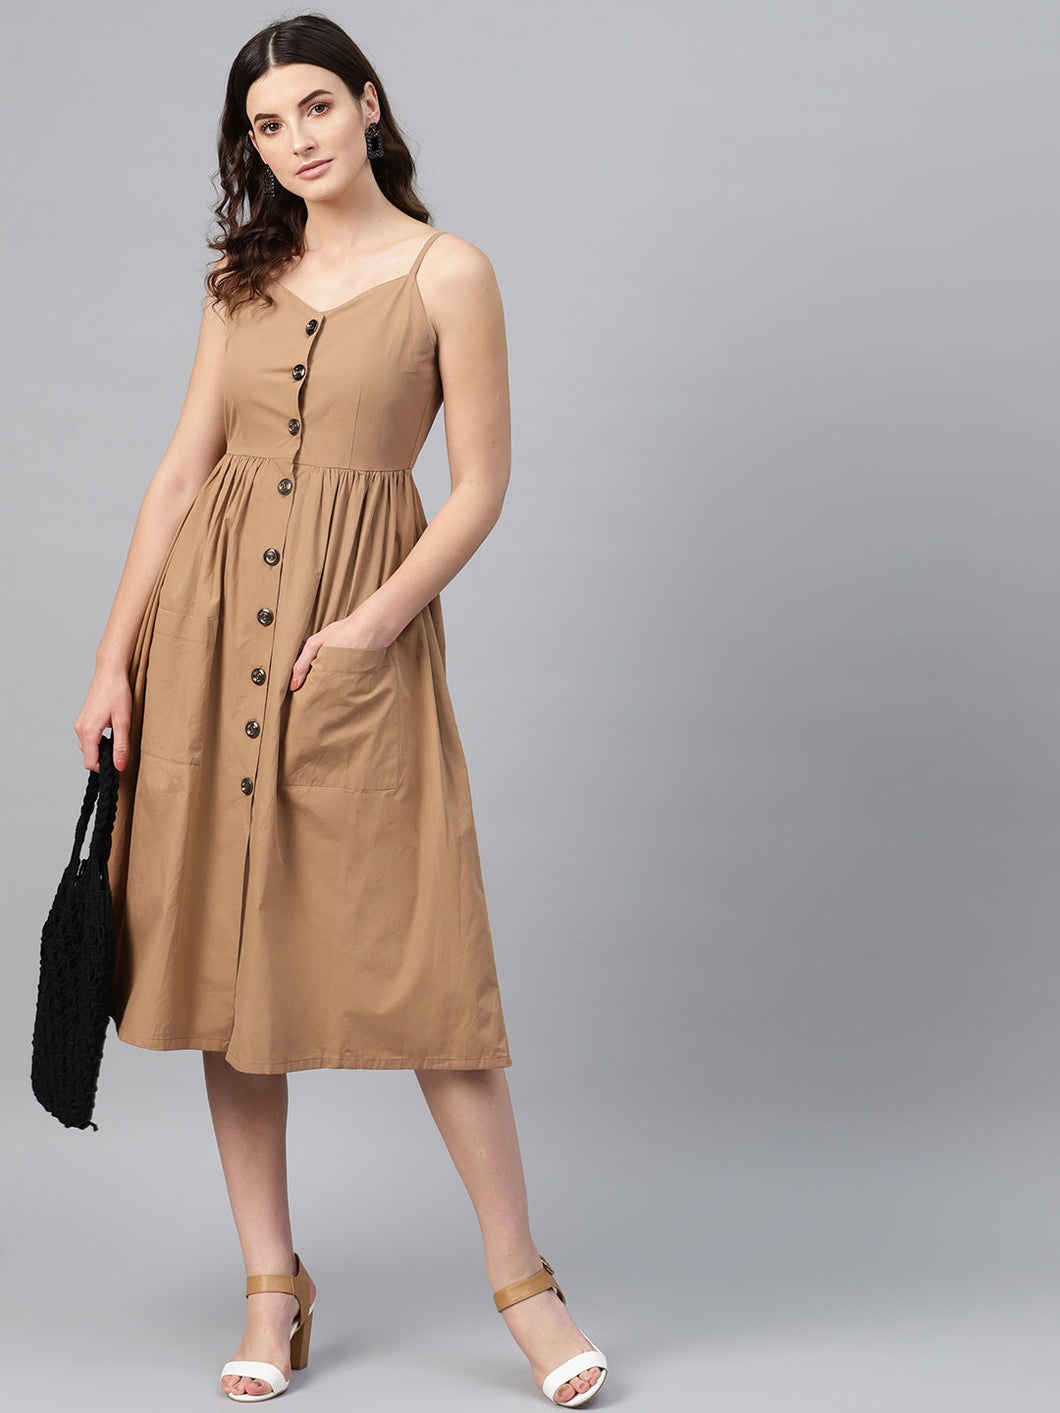 Queen ellie Women Brown Solid Empire Dress